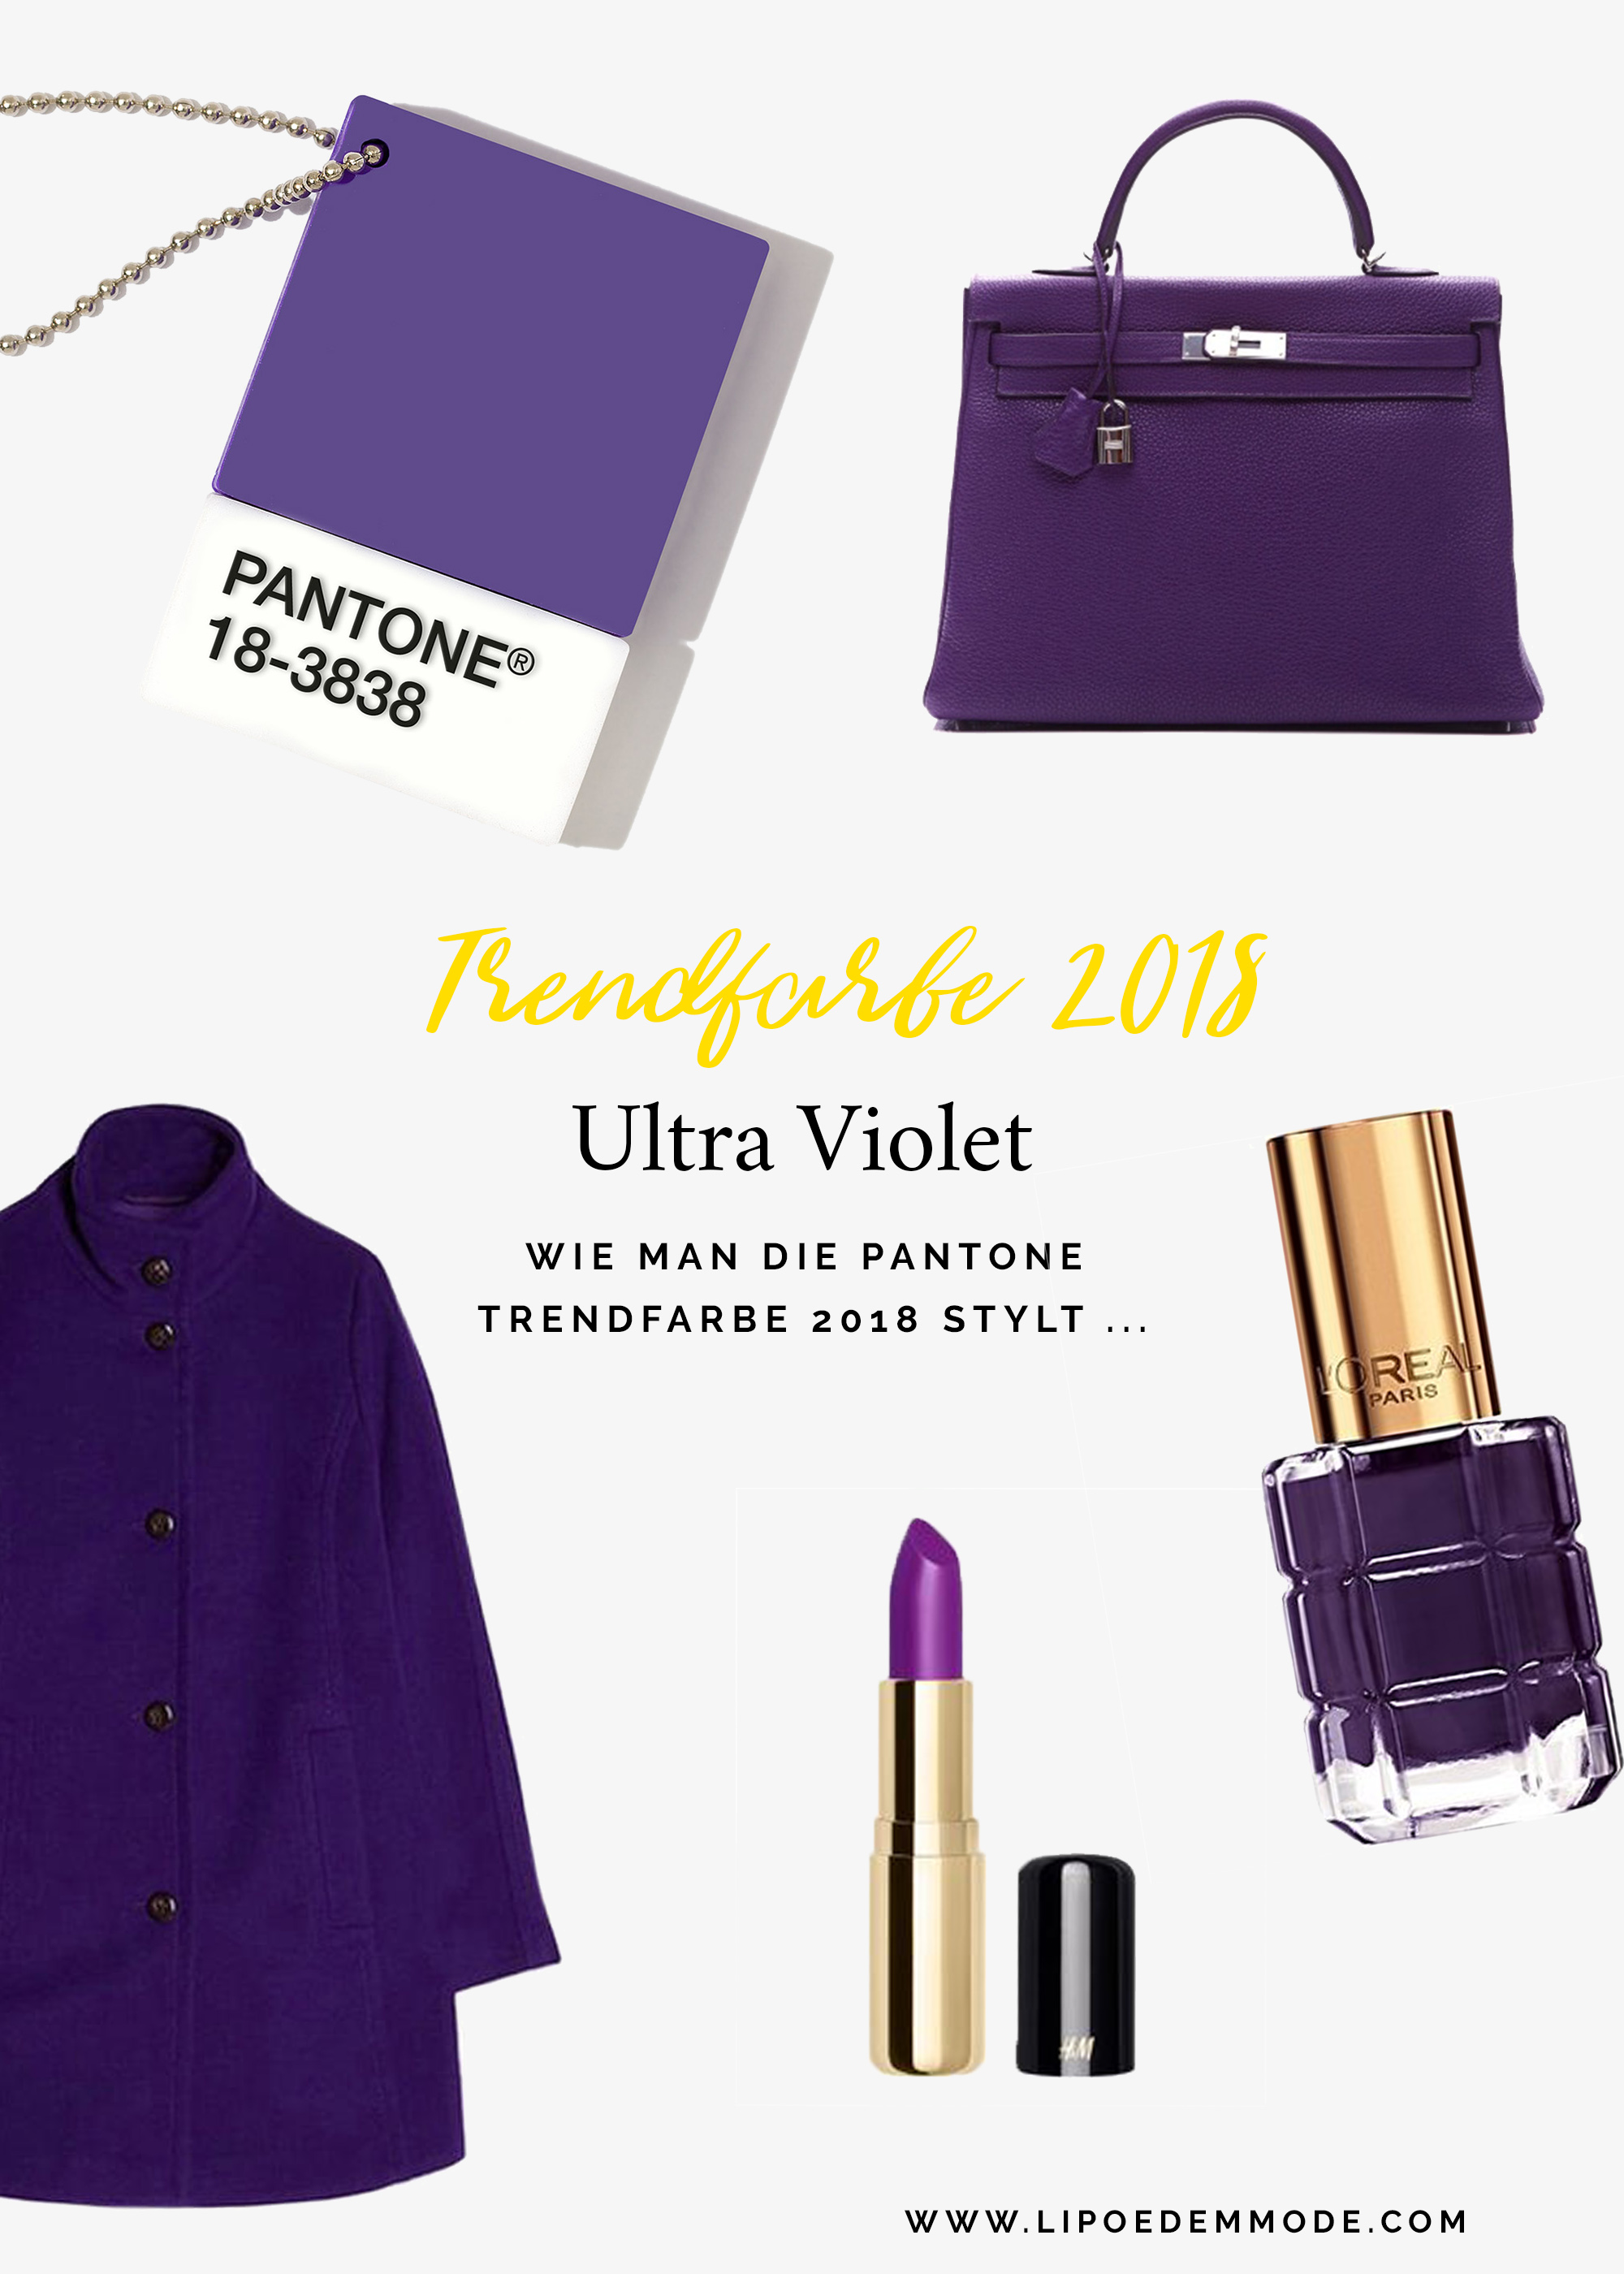 pantone trendfarbe 2018 ultra violet lip dem mode. Black Bedroom Furniture Sets. Home Design Ideas